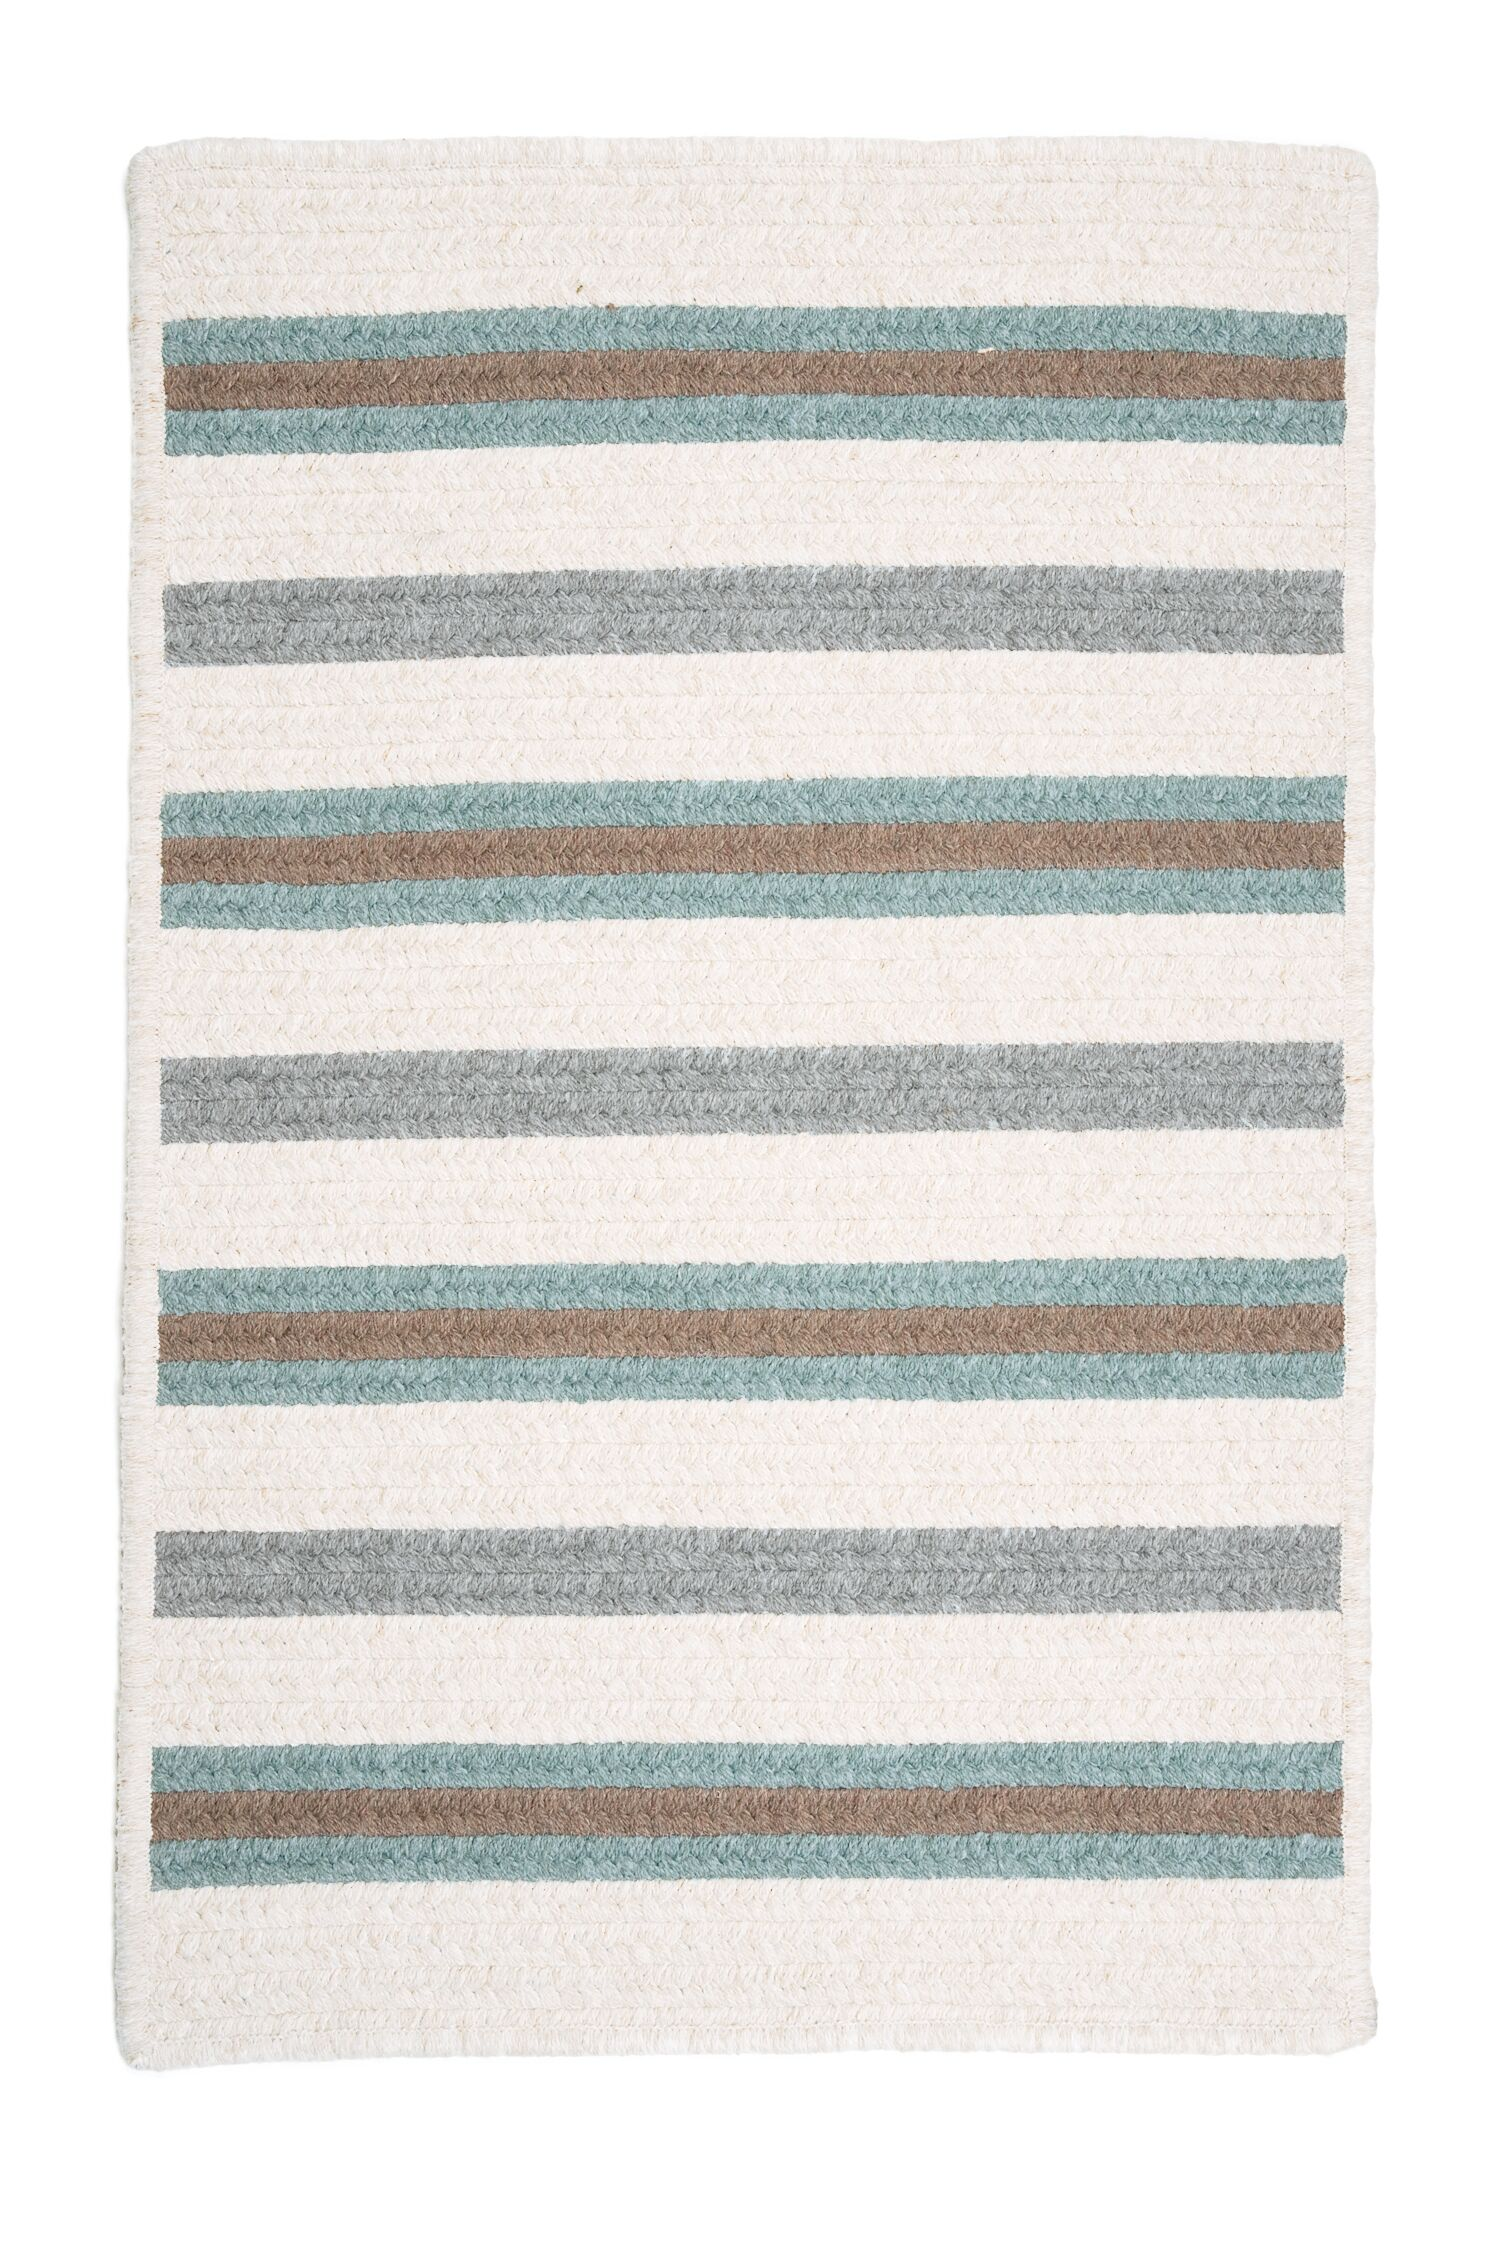 Allure Ivory Area Rug Rug Size: Rectangle 10' x 13'